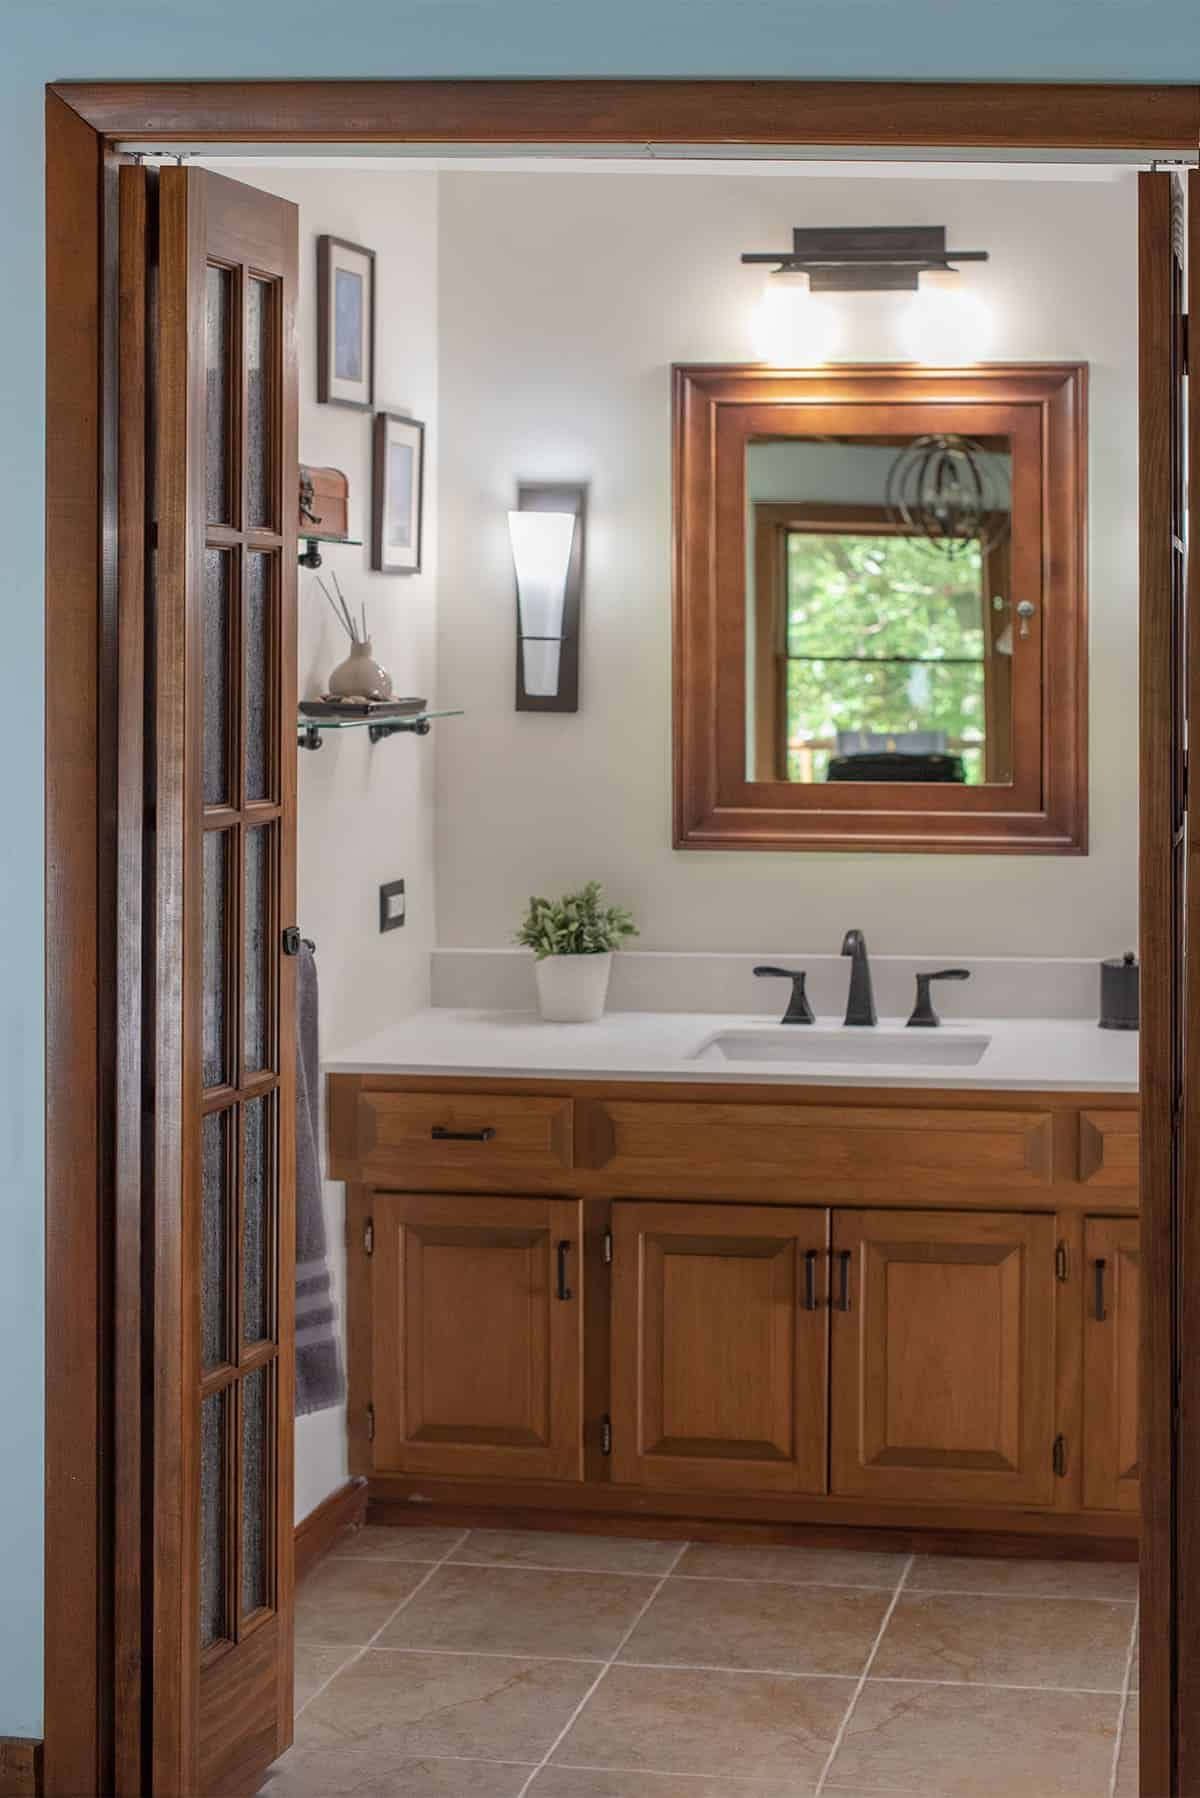 Updated modern farmhouse style bathroom with glass floating shelves and dark hardware. Wood framed mirror, door and wooden cabinets.